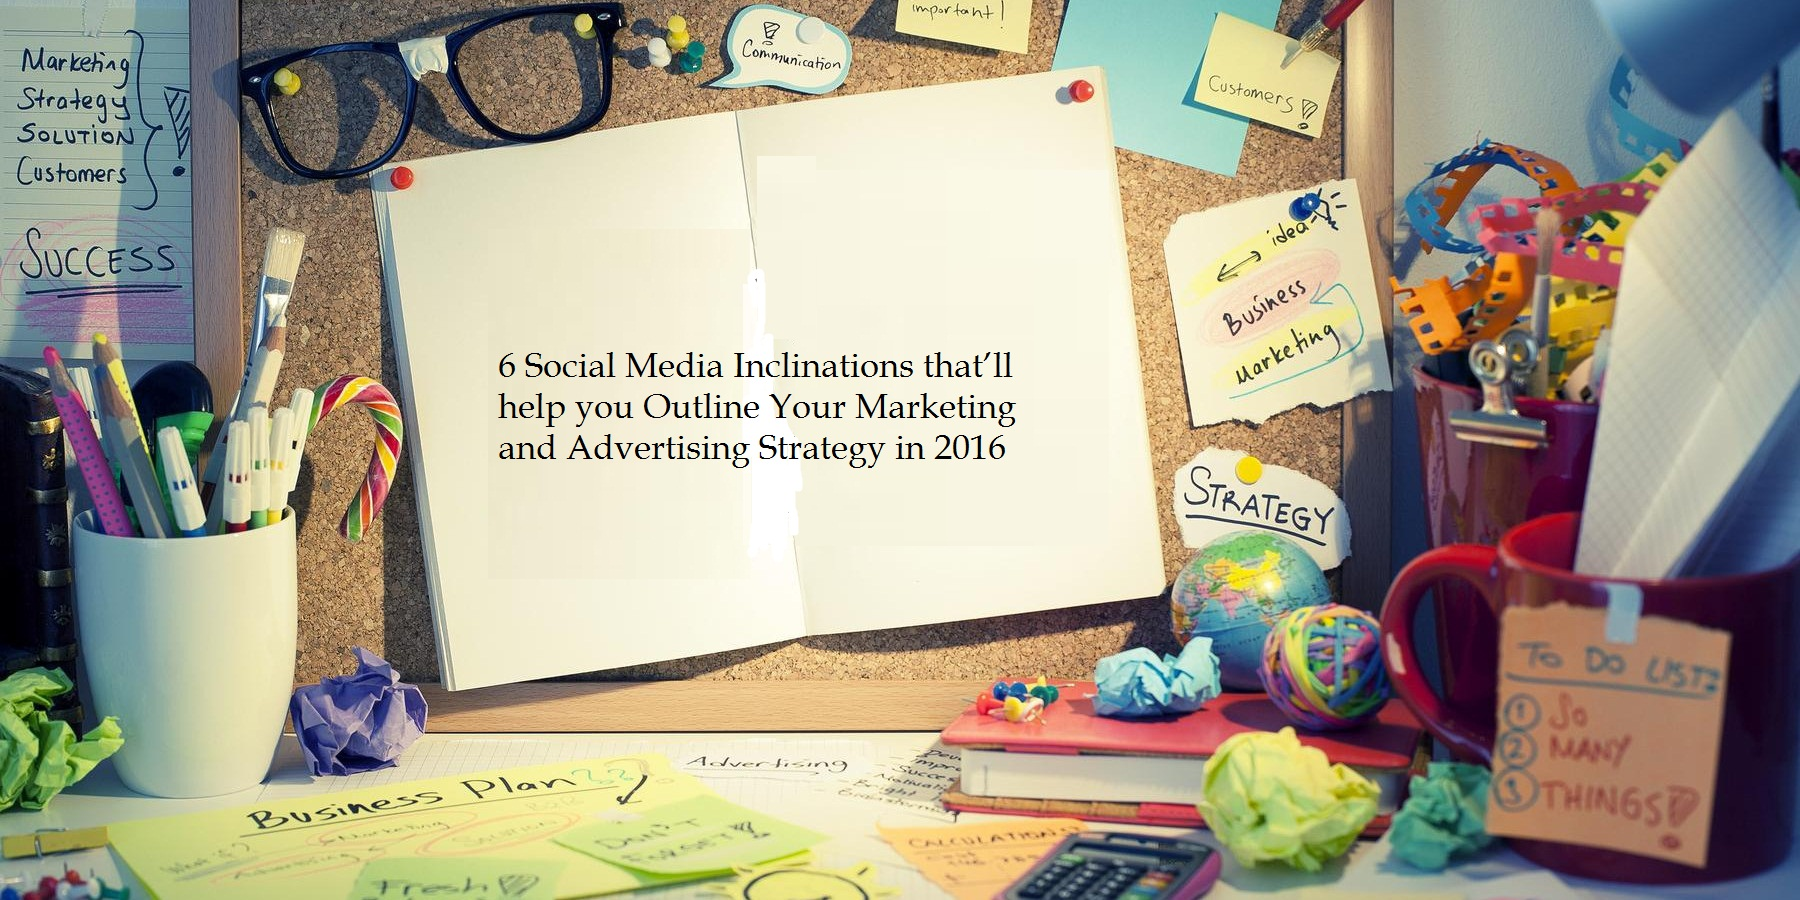 6 Social Media Inclinations that'll help you Outline Your Marketing and Advertising Strategy in 2016